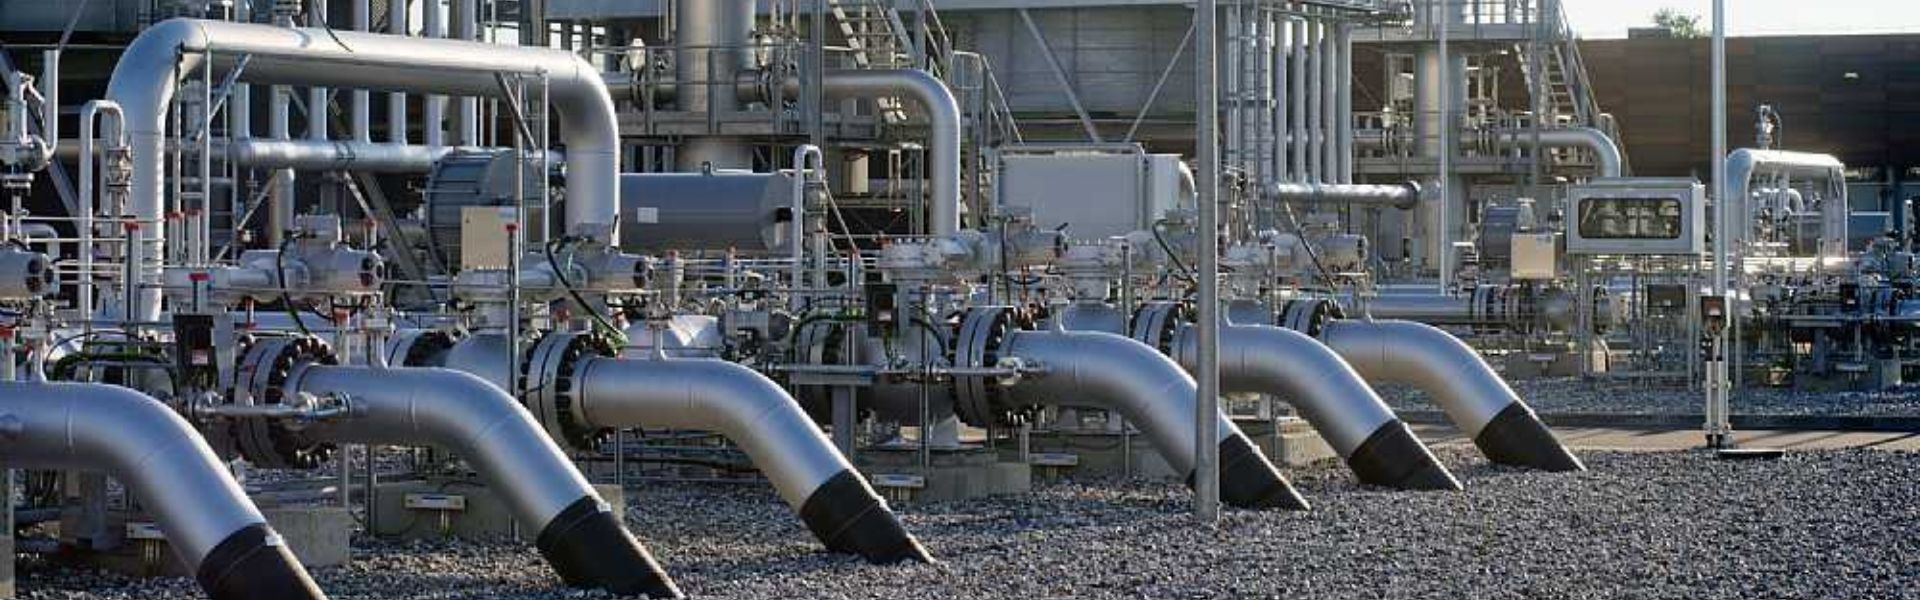 IN-LINE SILENCERS FOR GAS COMPRESSION STATION IN DENMARK